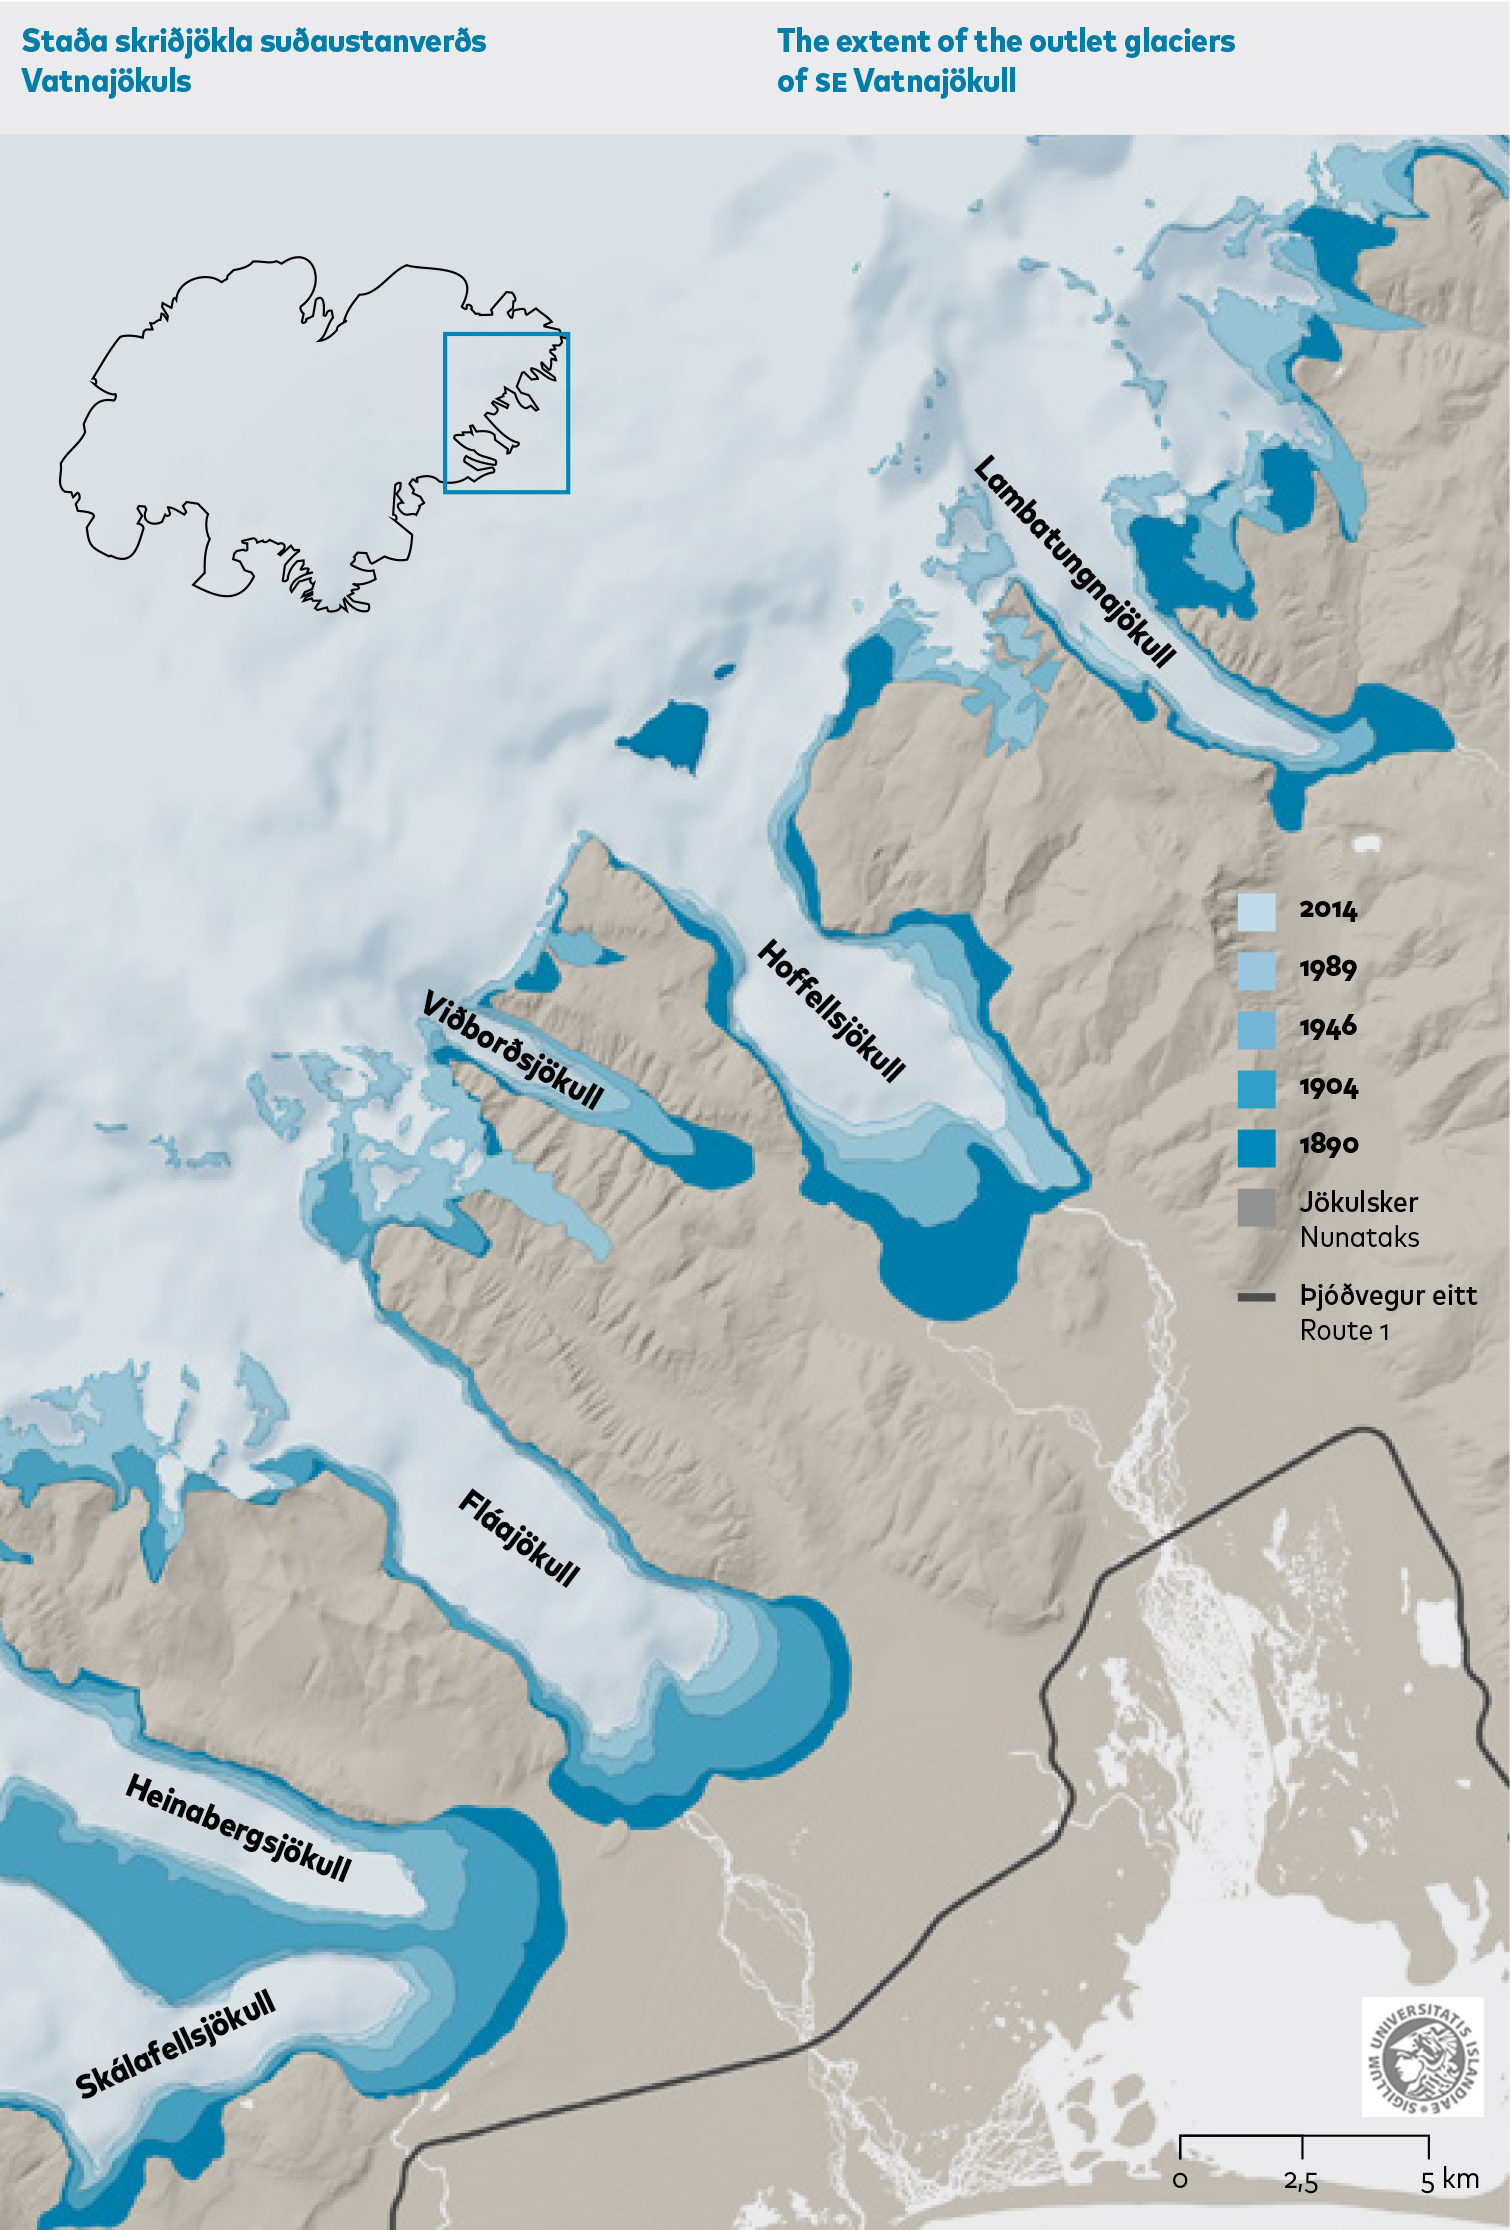 Map showing the southern outlet glaciers of Vatnajökull ice cap and their extent from ca. 1890 to 2010. Source: Hannesdóttir et al. (2015a).